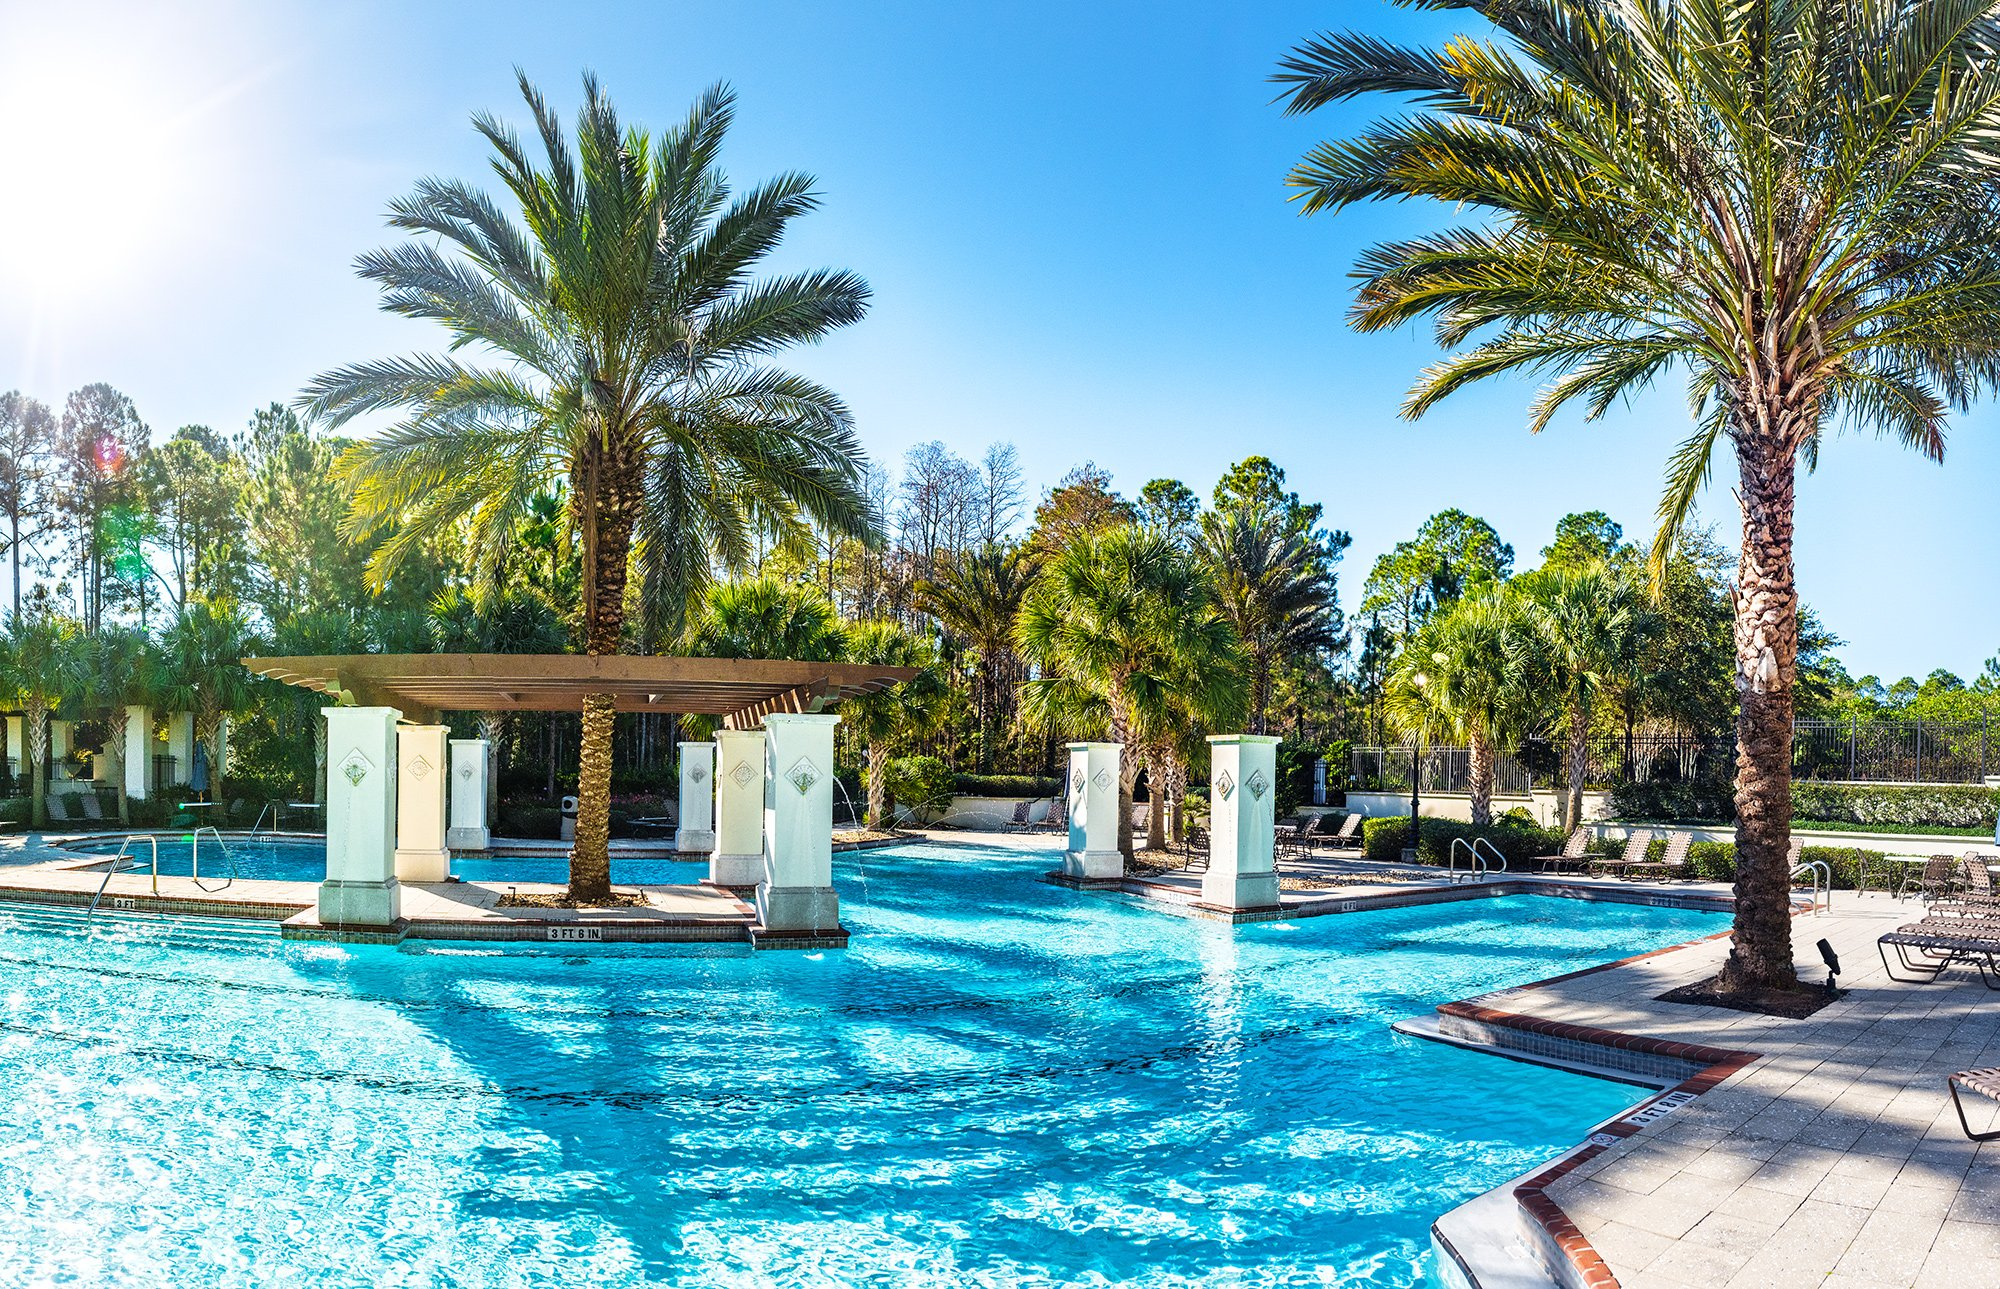 The pool at Amelia National Golf and Country Club